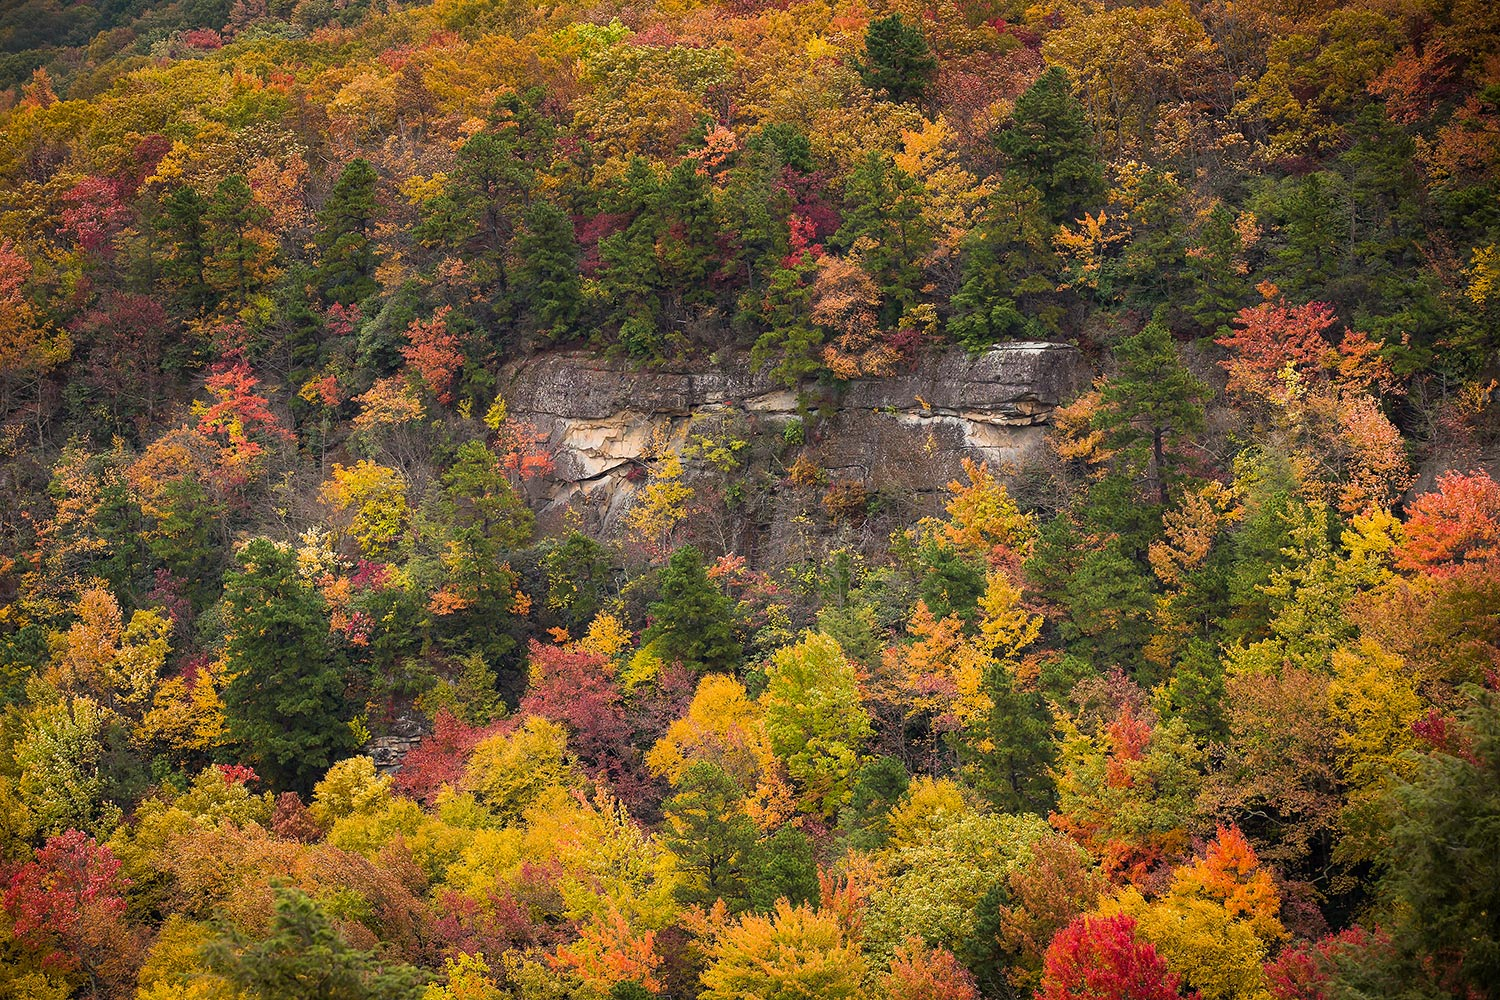 A rocky cliff surrounded by fall colors, VA.